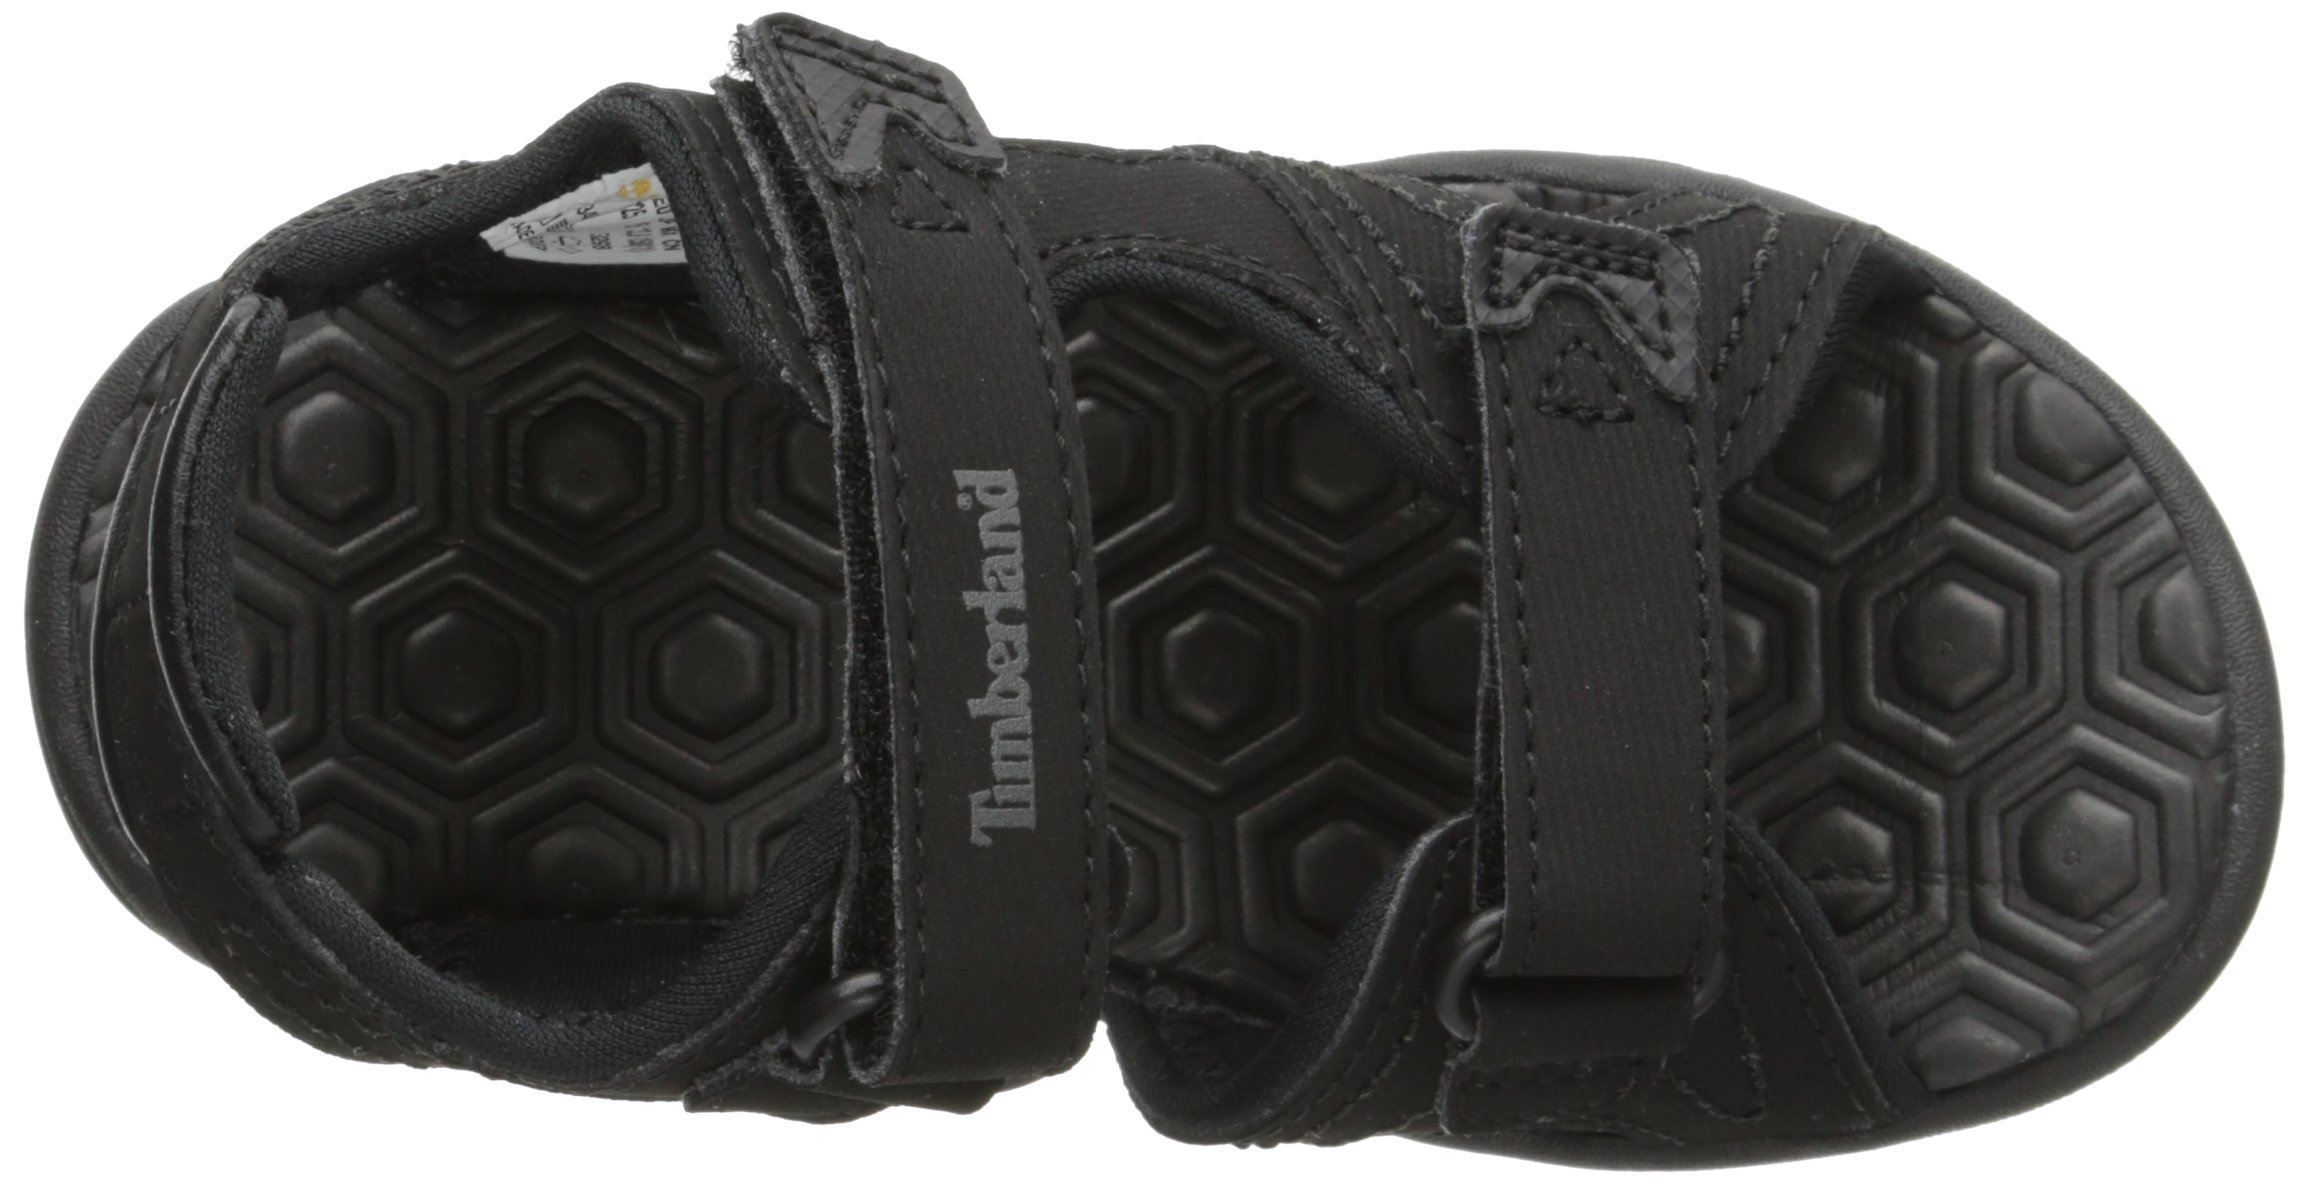 Timberland Adventure Seeker Two-Strap Sandal (Toddler/Little Kid),Blackout,9 M US Toddler by Timberland (Image #8)